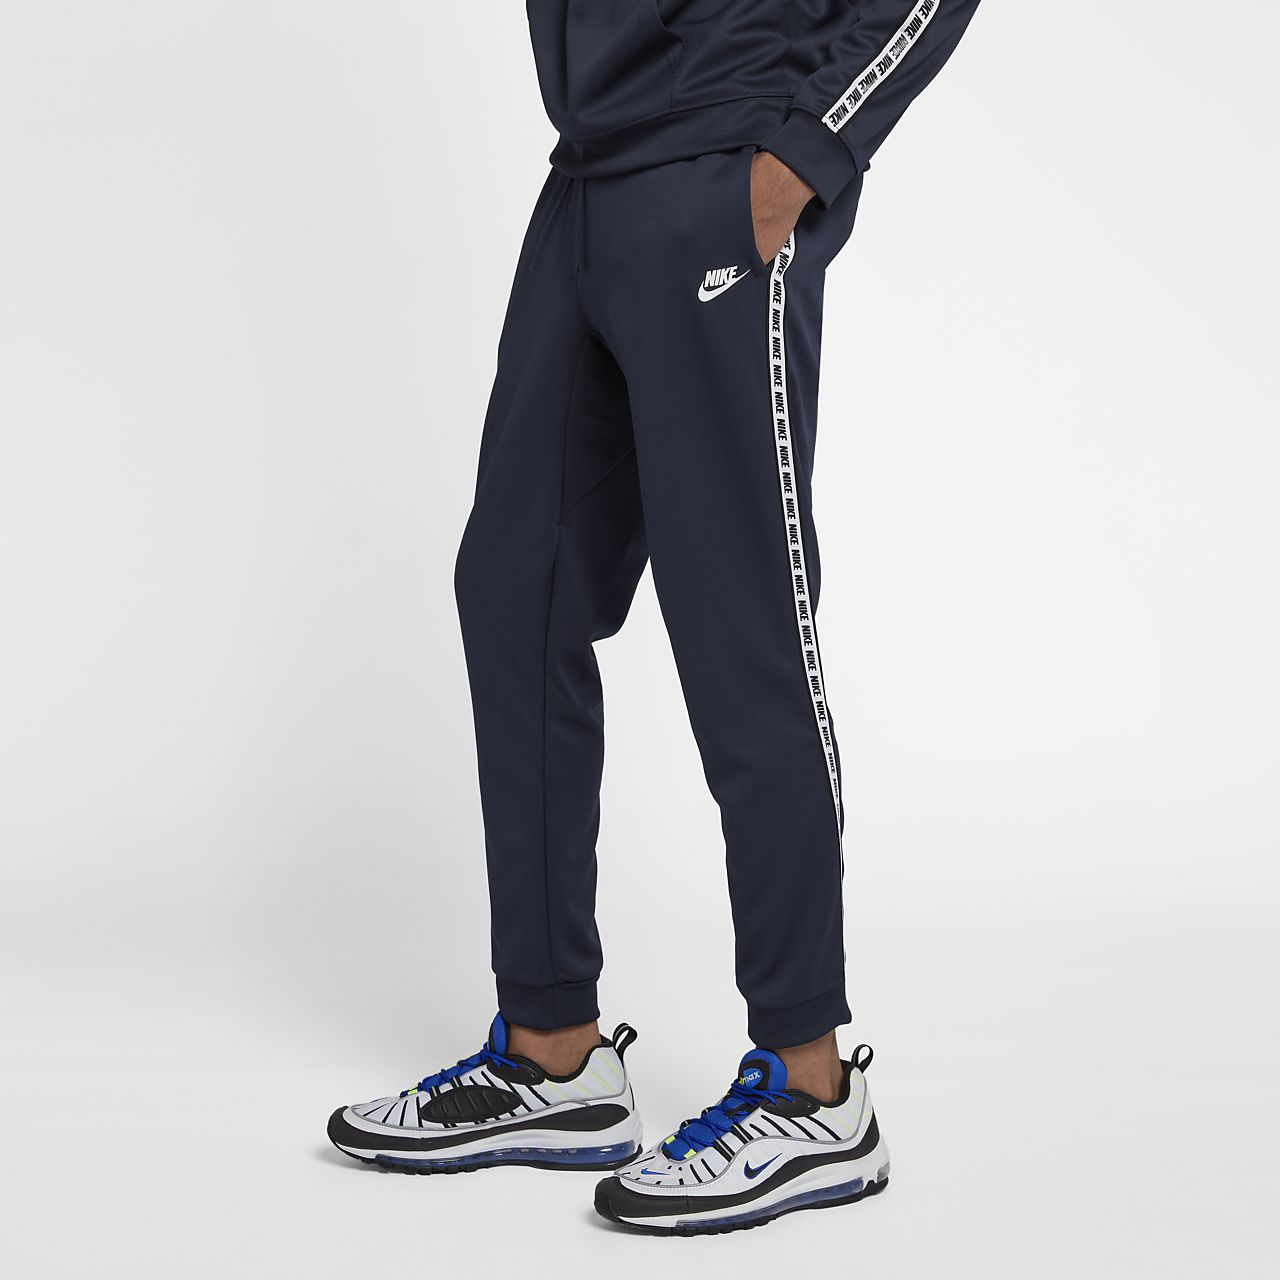 Pantaloni in fleece Nike Sportswear - Uomo